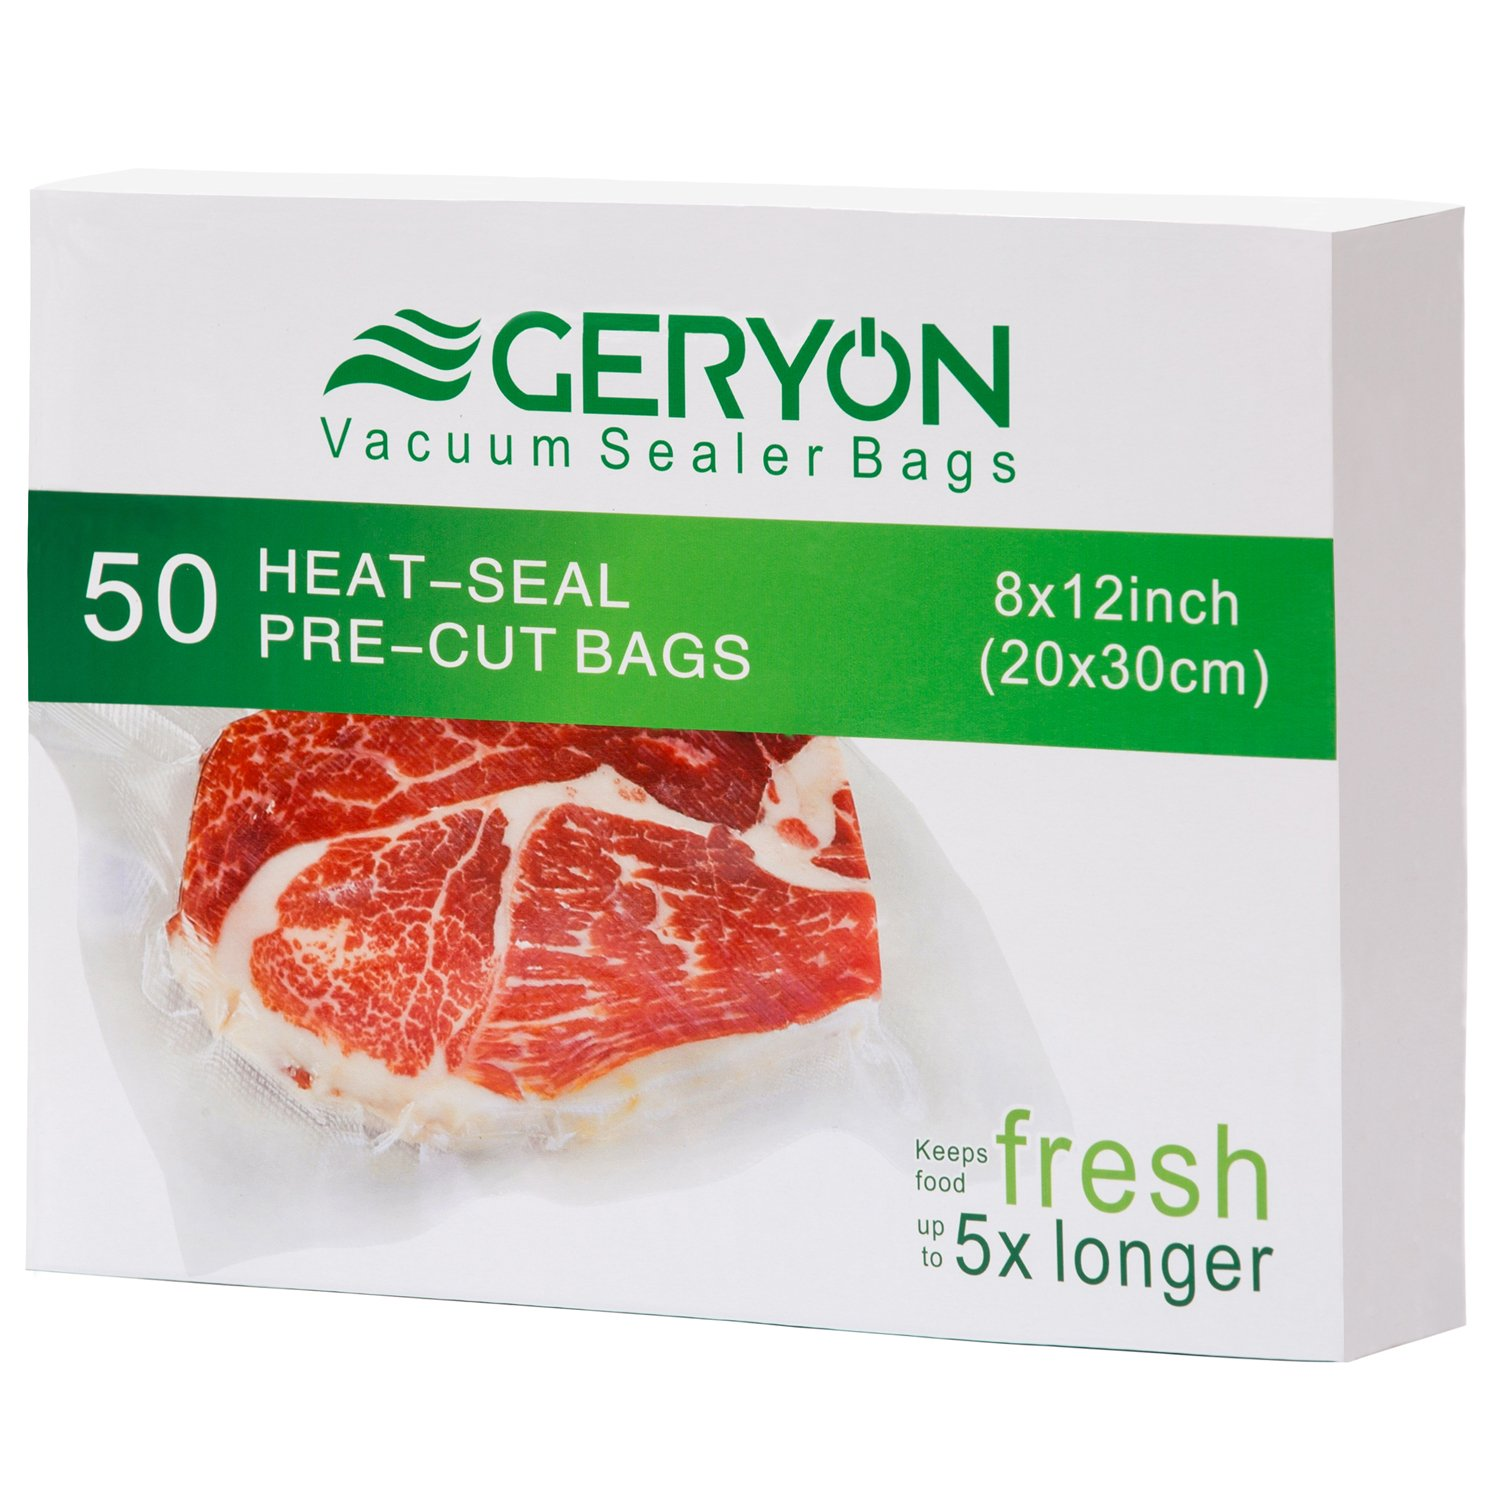 "GERYON Vacuum Sealer Bags, Pre-Cut Food Sealer Bags Quart Size 8""x12"" for Food Saver & Sous Vide Cooking, 50 Count"